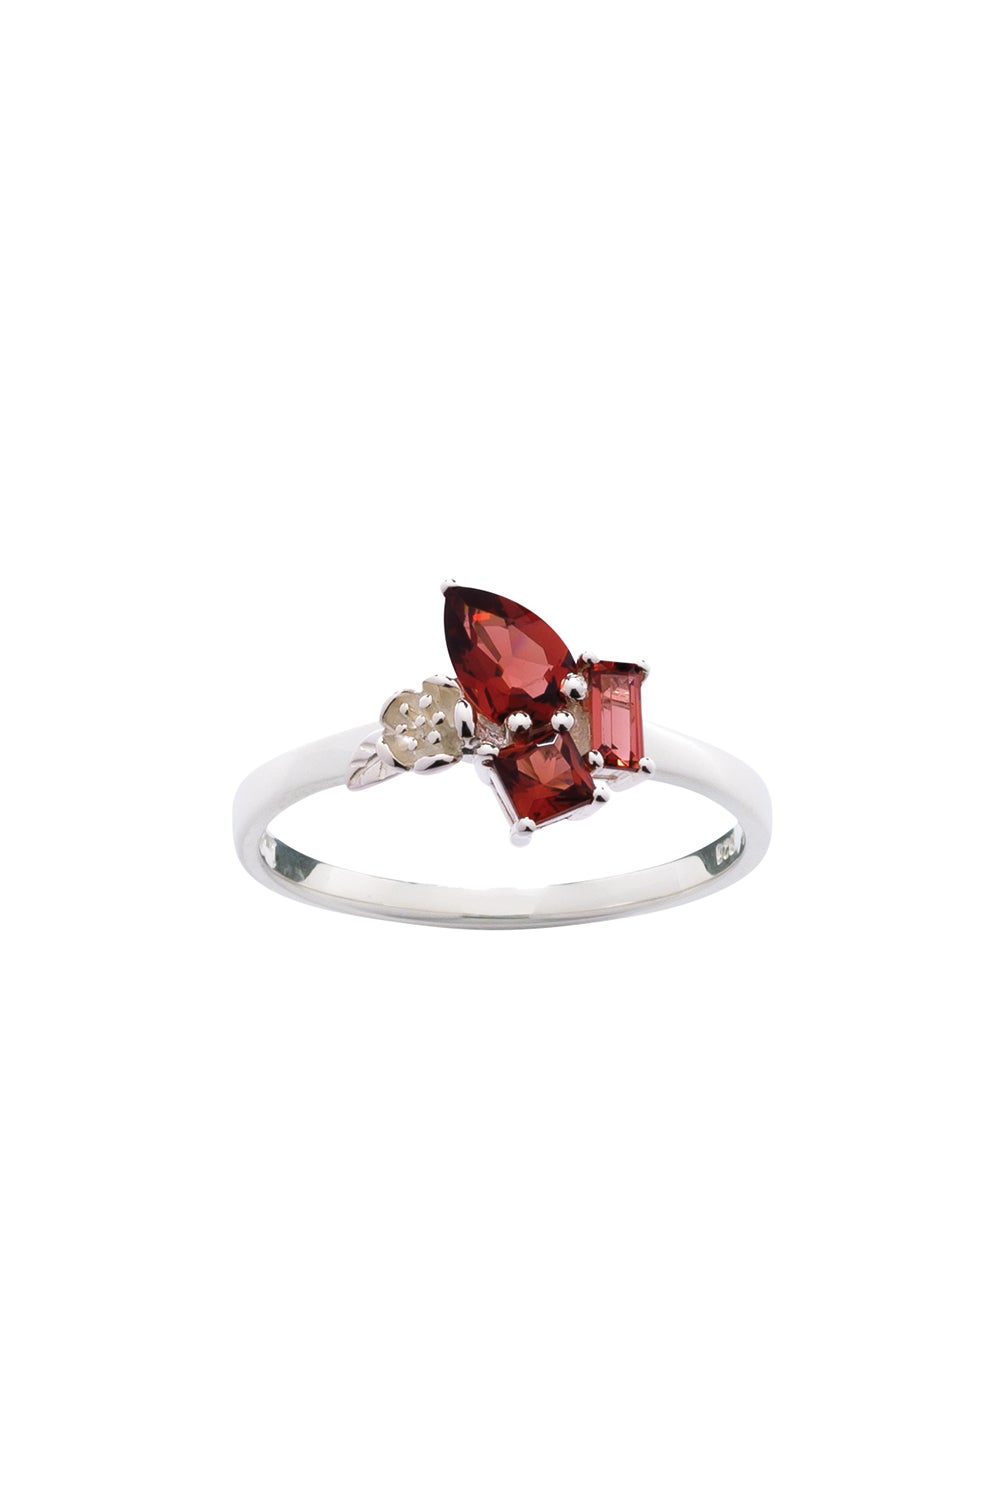 Rock Garden Mini Ring Silver & Garnet